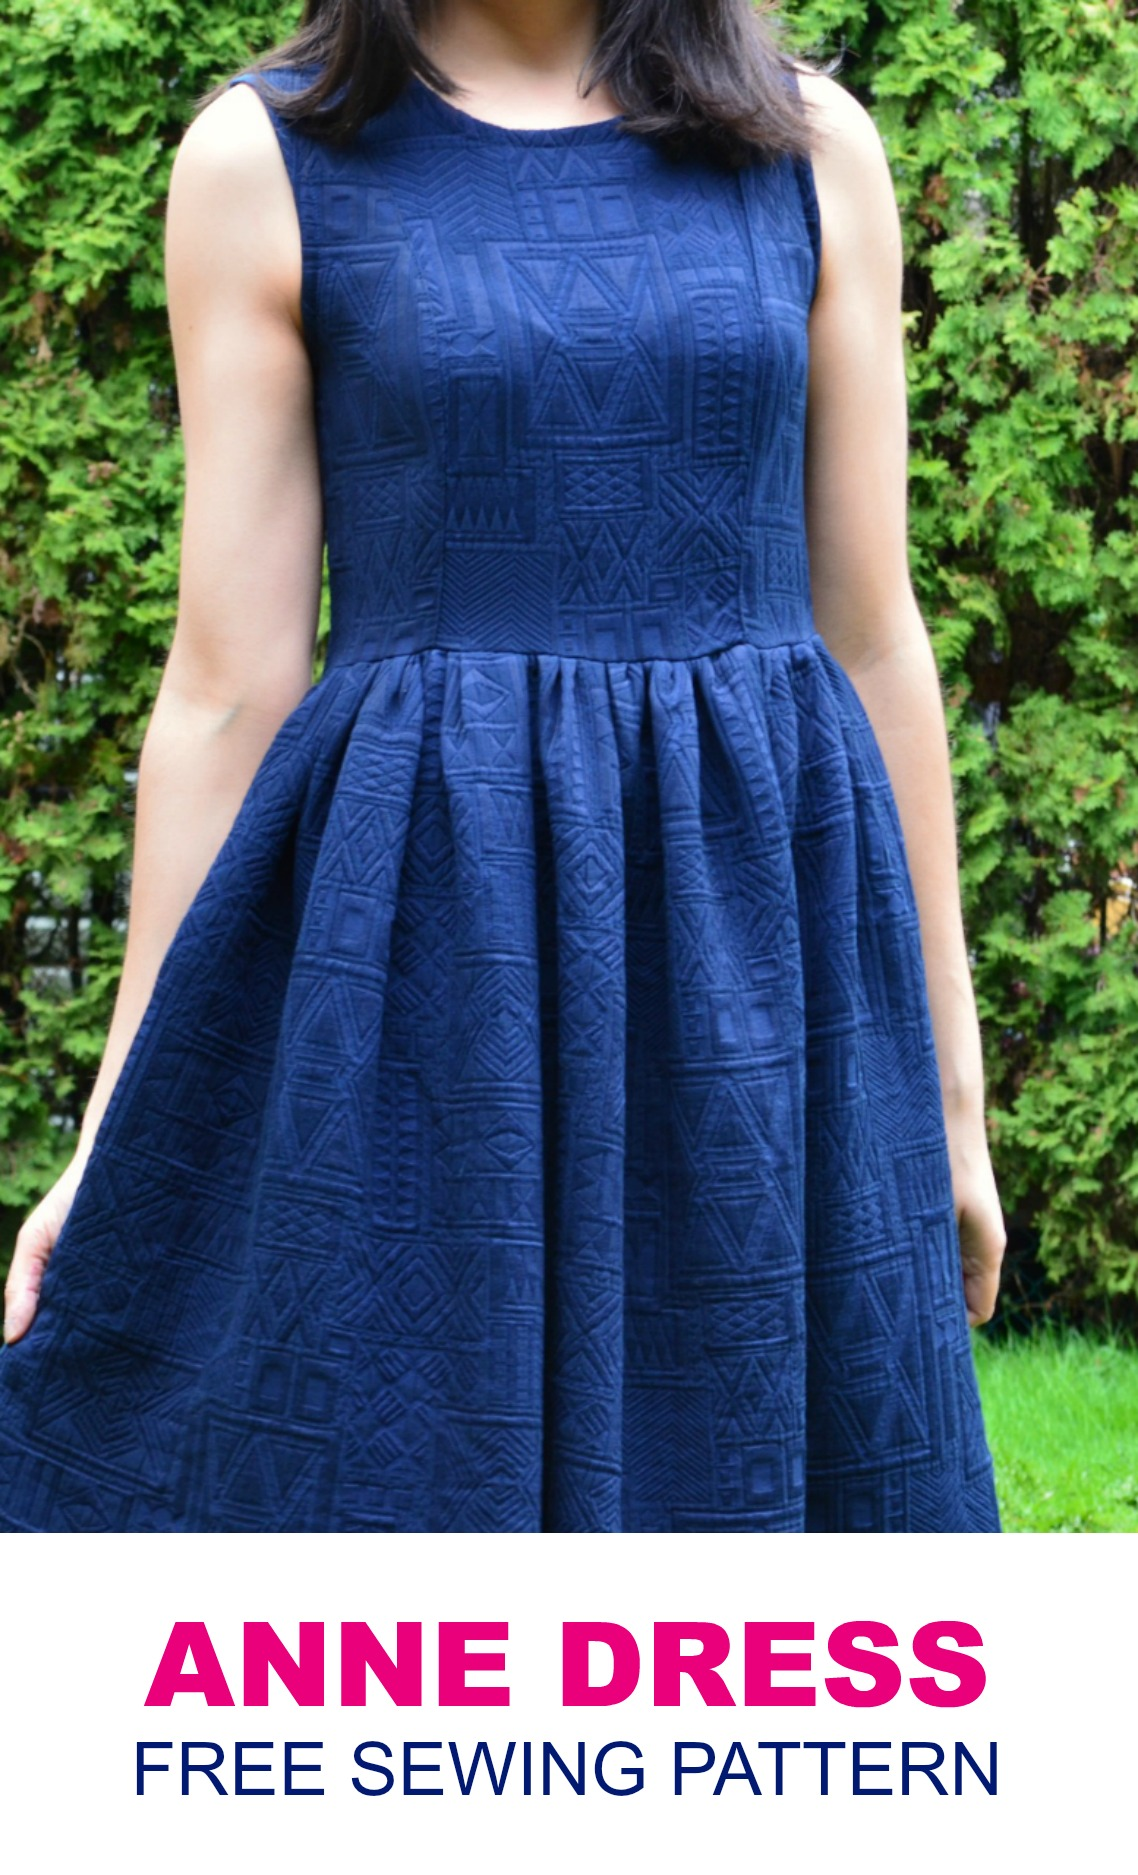 Free sewing pattern for women on the cutting floor printable this is our free sewing pattern the anne dress jeuxipadfo Gallery